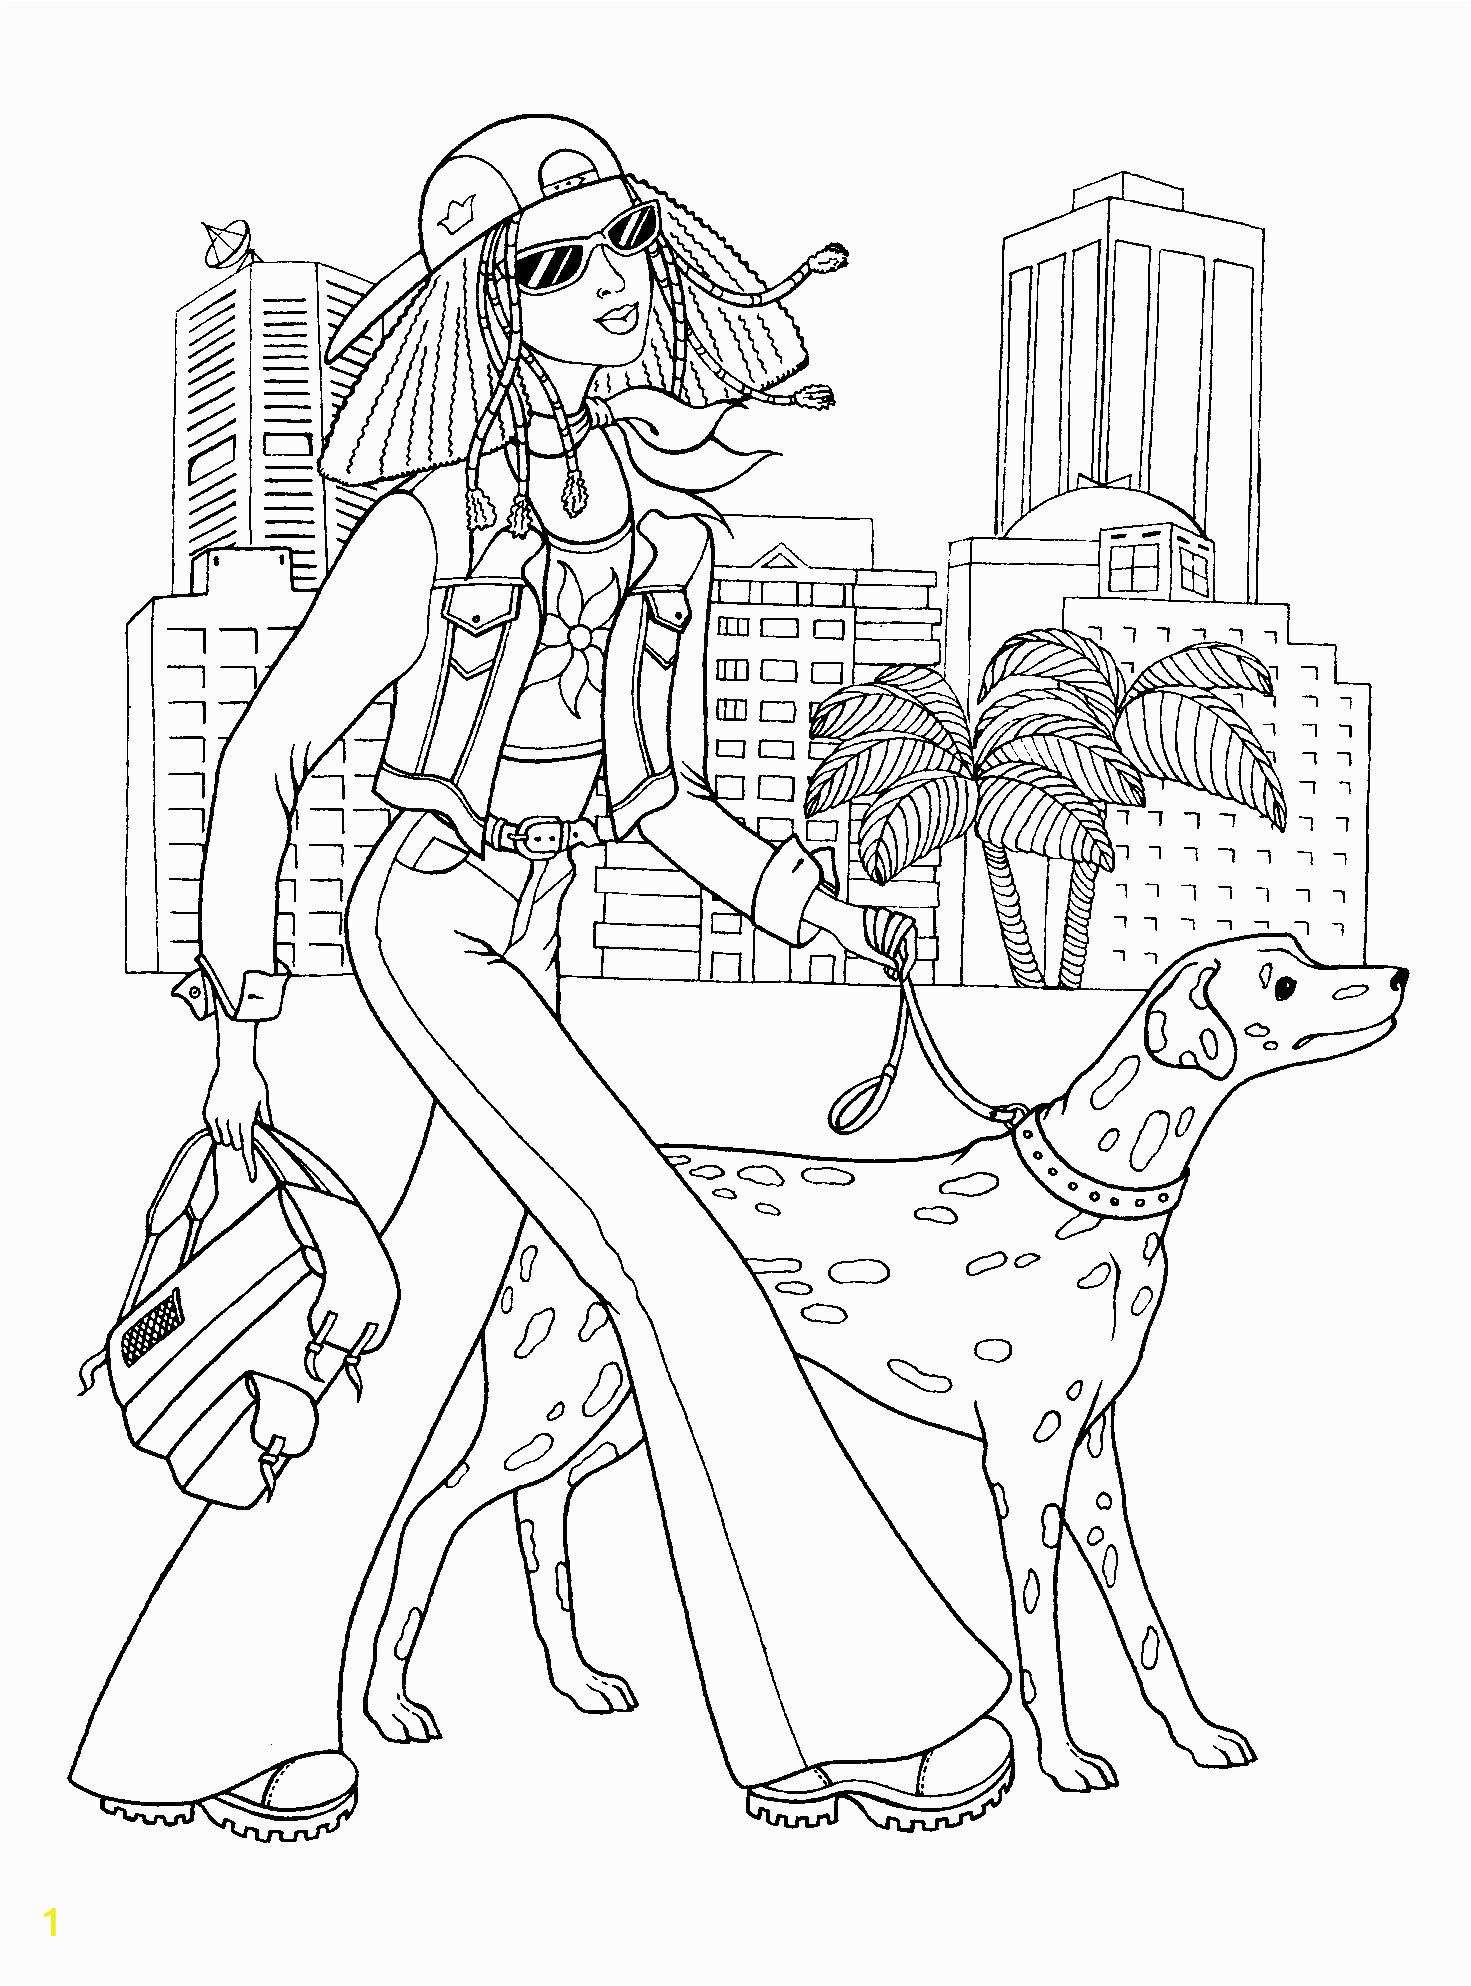 Printable Coloring Pages for Teenage Girl 45 Free Coloring Pages for Teens